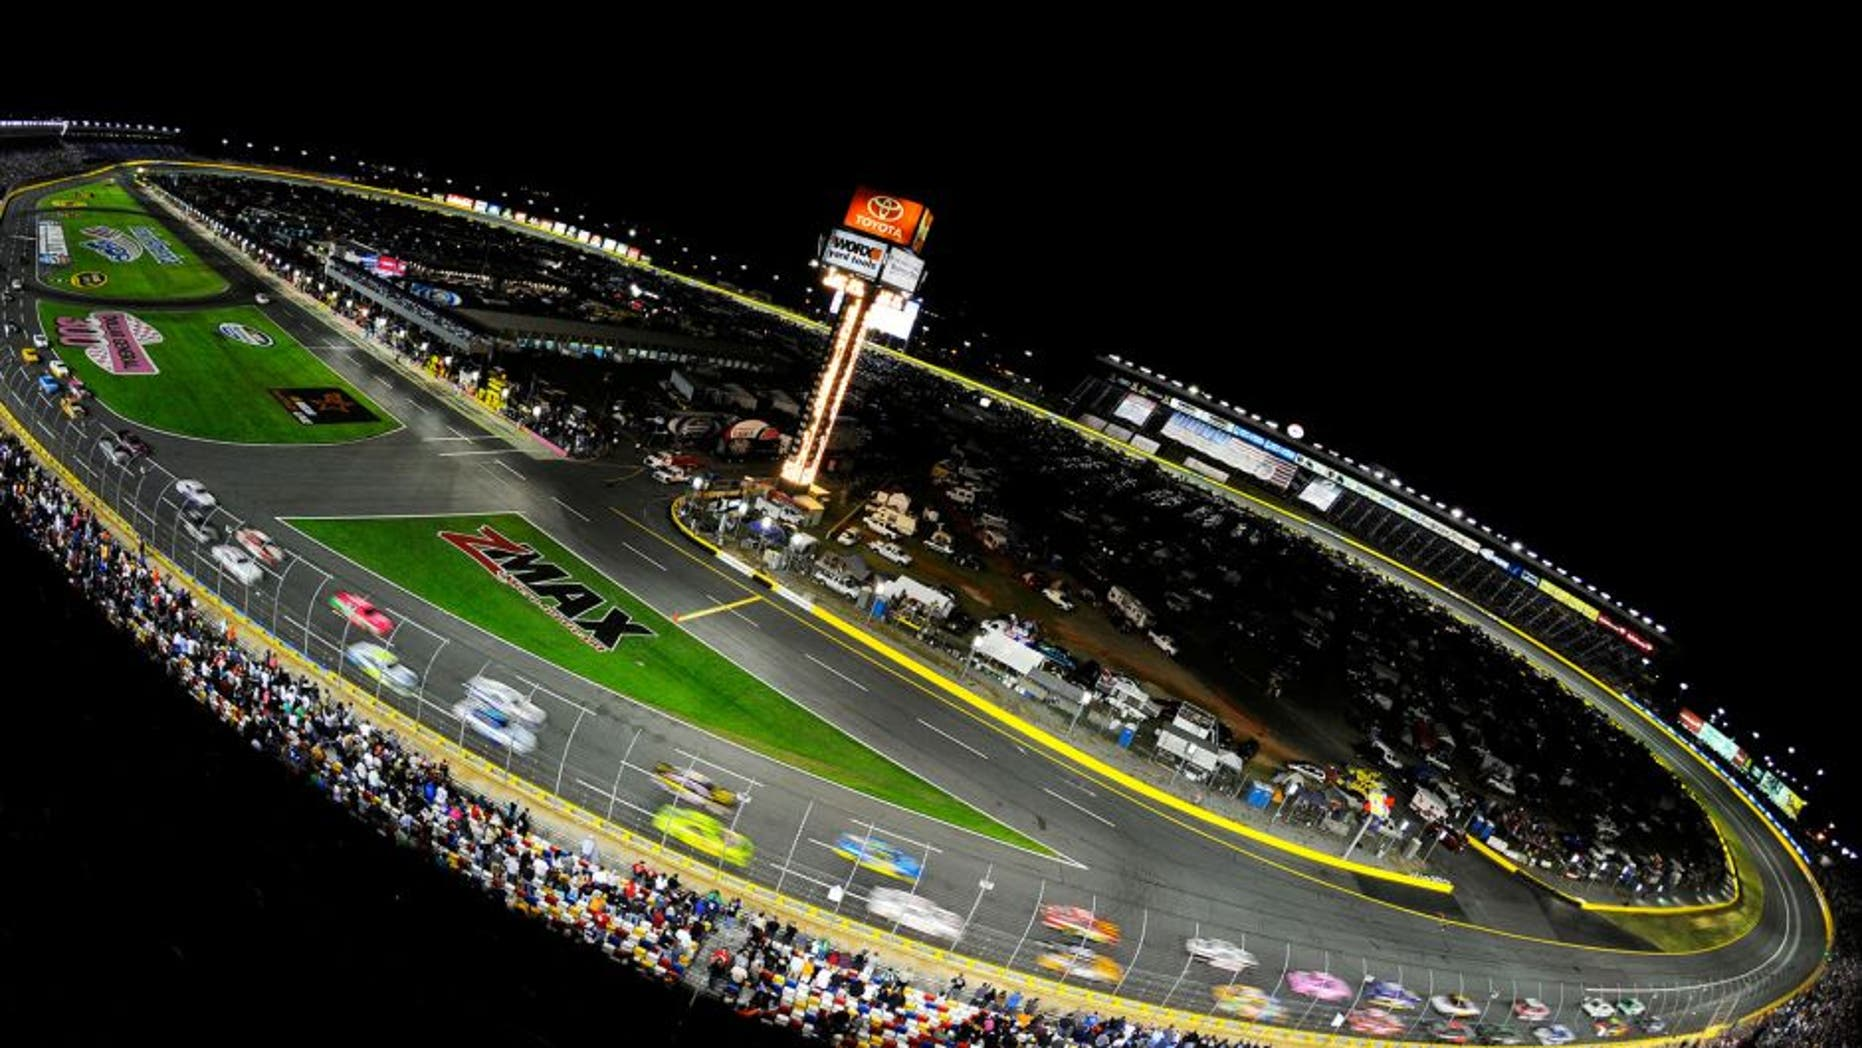 CONCORD, NC - OCTOBER 12: General view of cars racing the NASCAR Sprint Cup Series Bank of America 500 at Charlotte Motor Speedway on October 12, 2013 in Concord, North Carolina. (Photo by Jared C. Tilton/NASCAR via Getty Images)